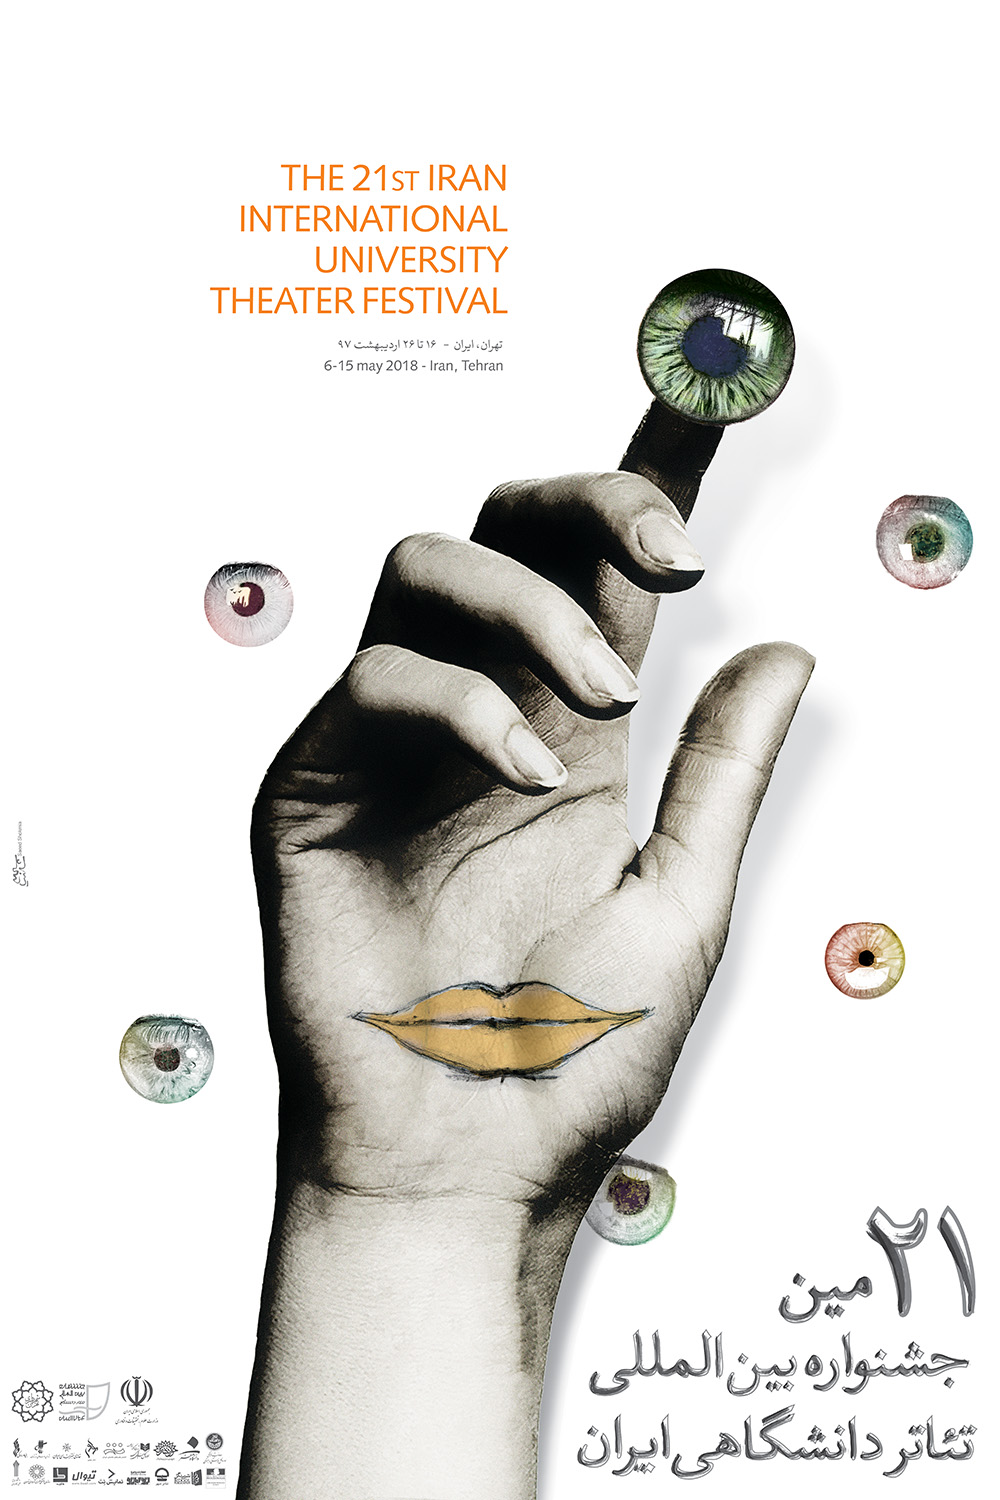 Poster Design, Theater Festival